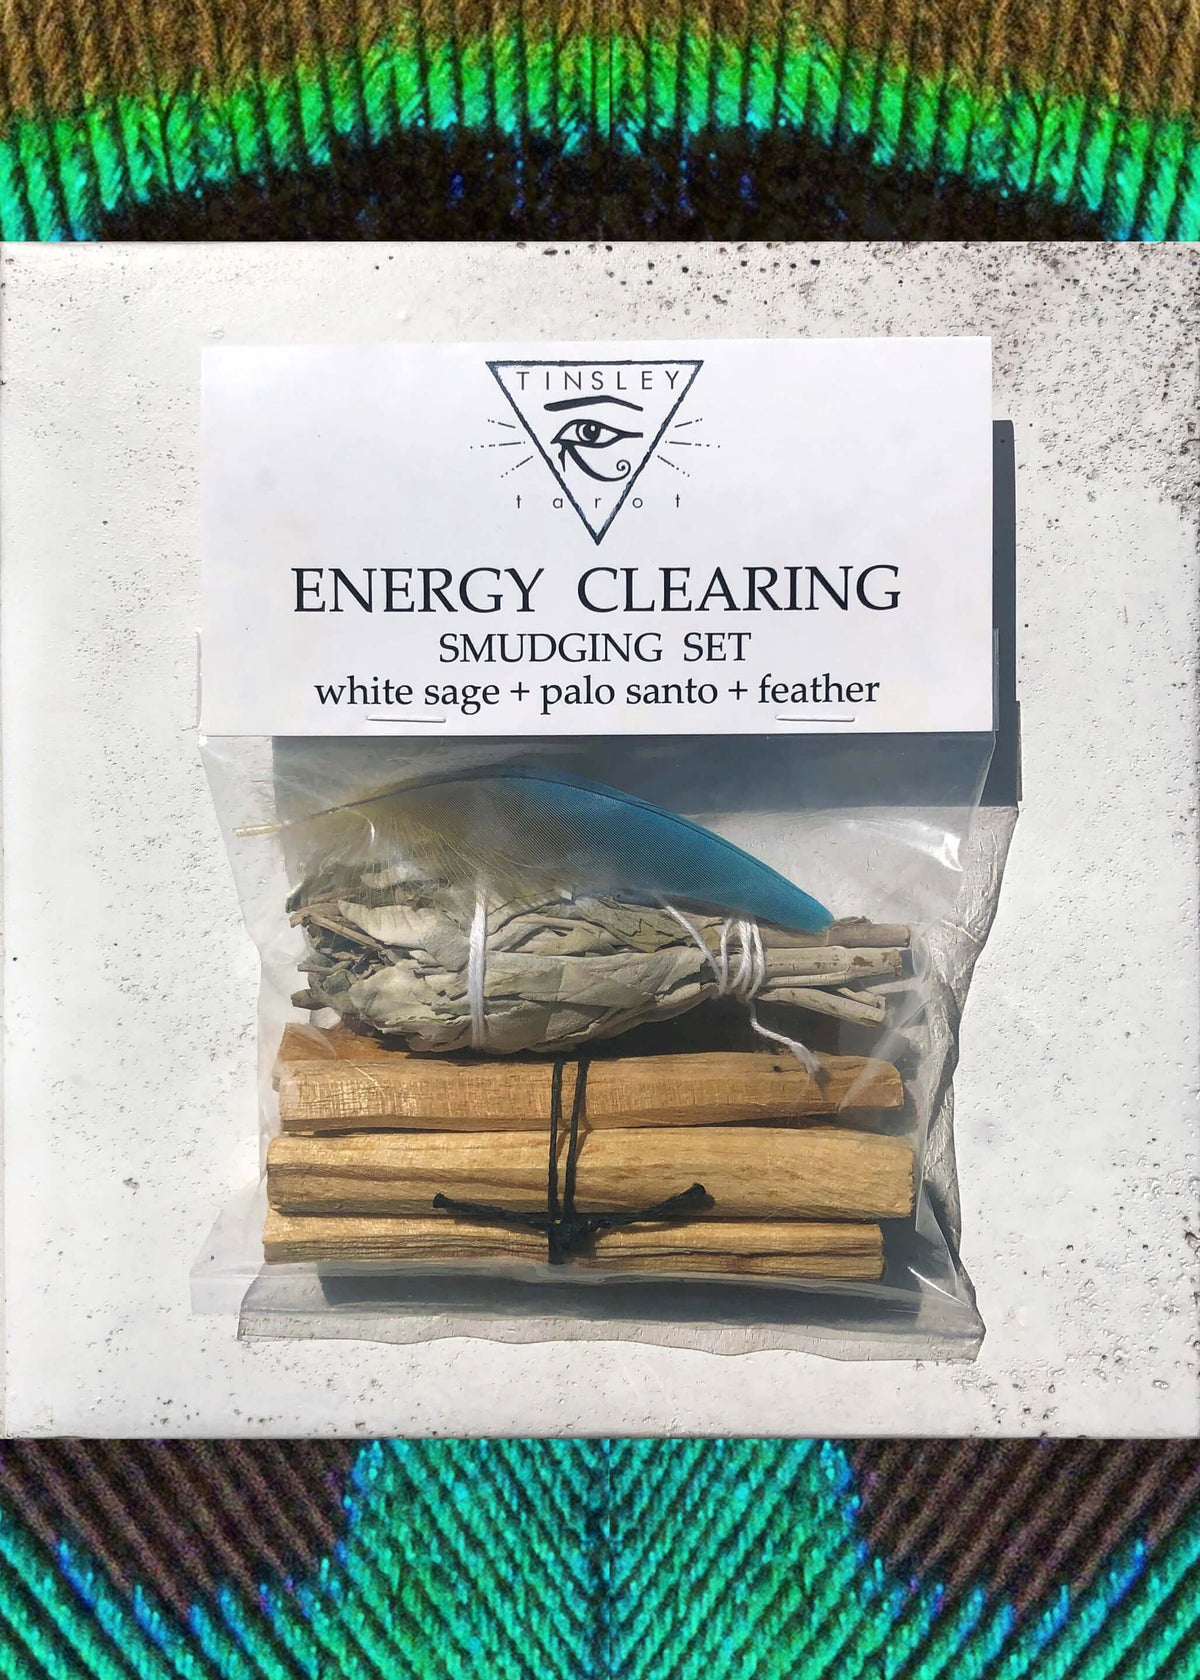 Energy Clearing Smudging Set + White Sage & Palo Santo